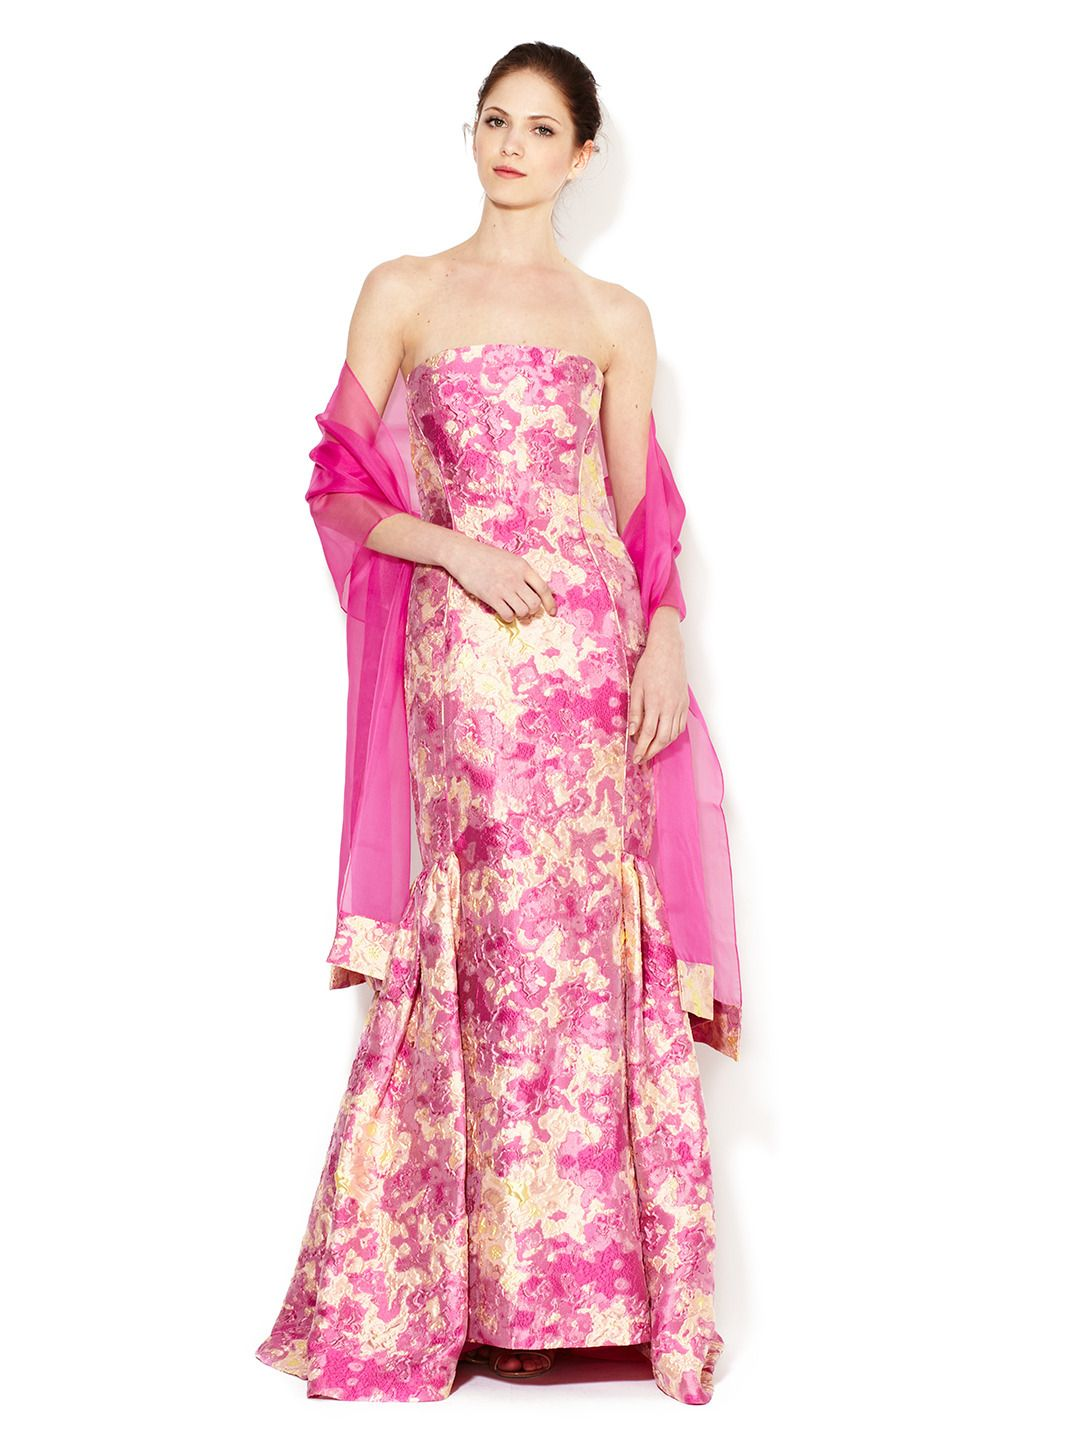 Strapless Peony Brocade Gown by Theia at Gilt | Cierra Los Ojos ...